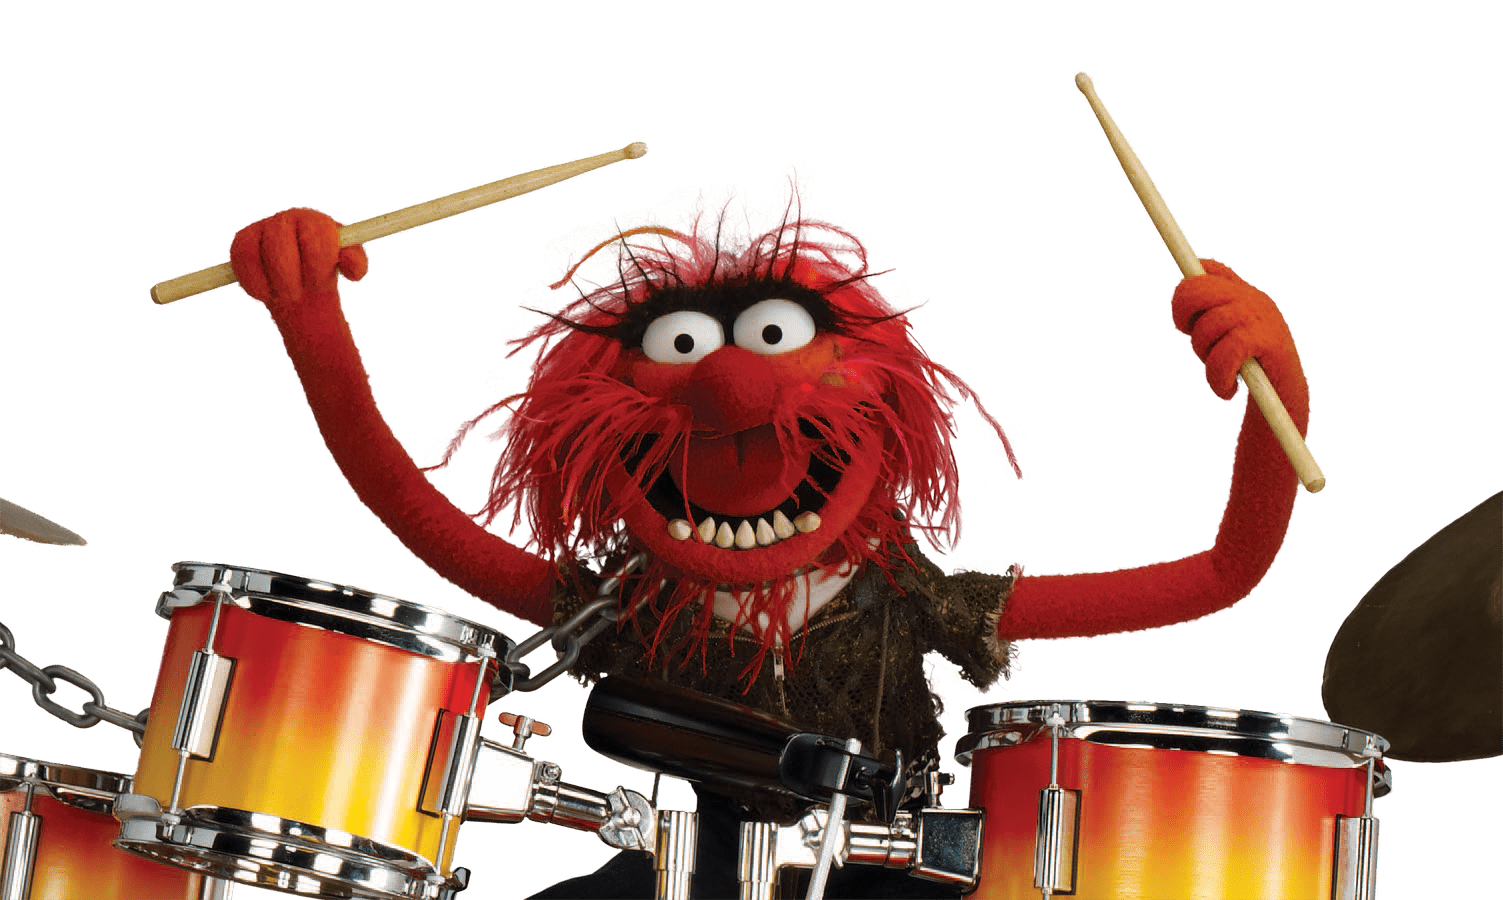 Fact check rock legend animal is not dead - Animal muppet images ...